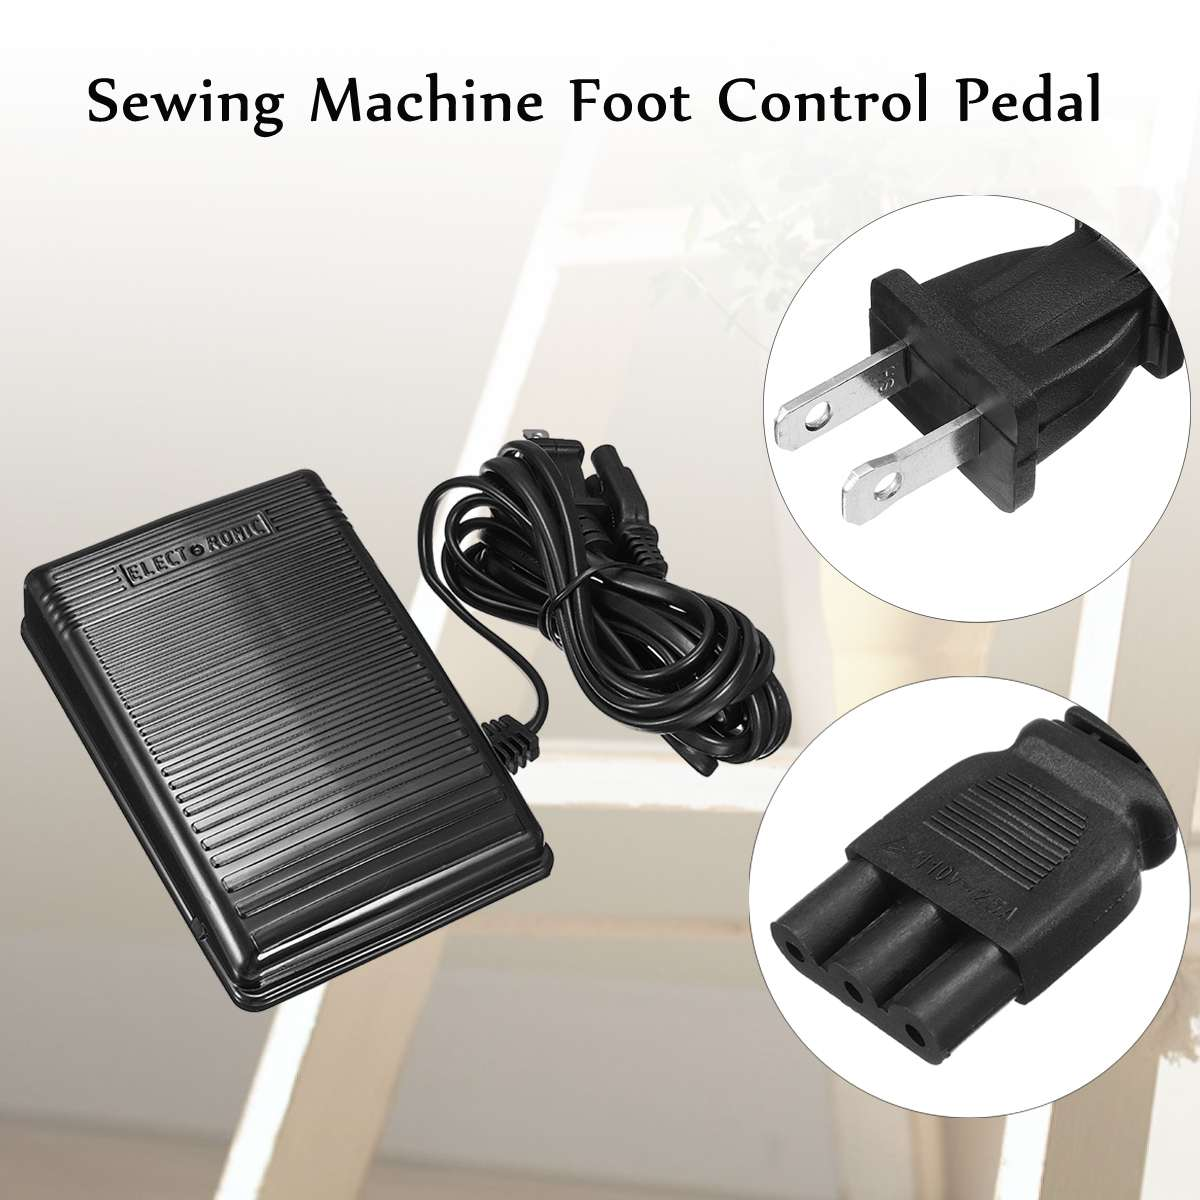 Domestic Sewing Machine Foot Speed Control Pedal For Singer 4600 6230 7000